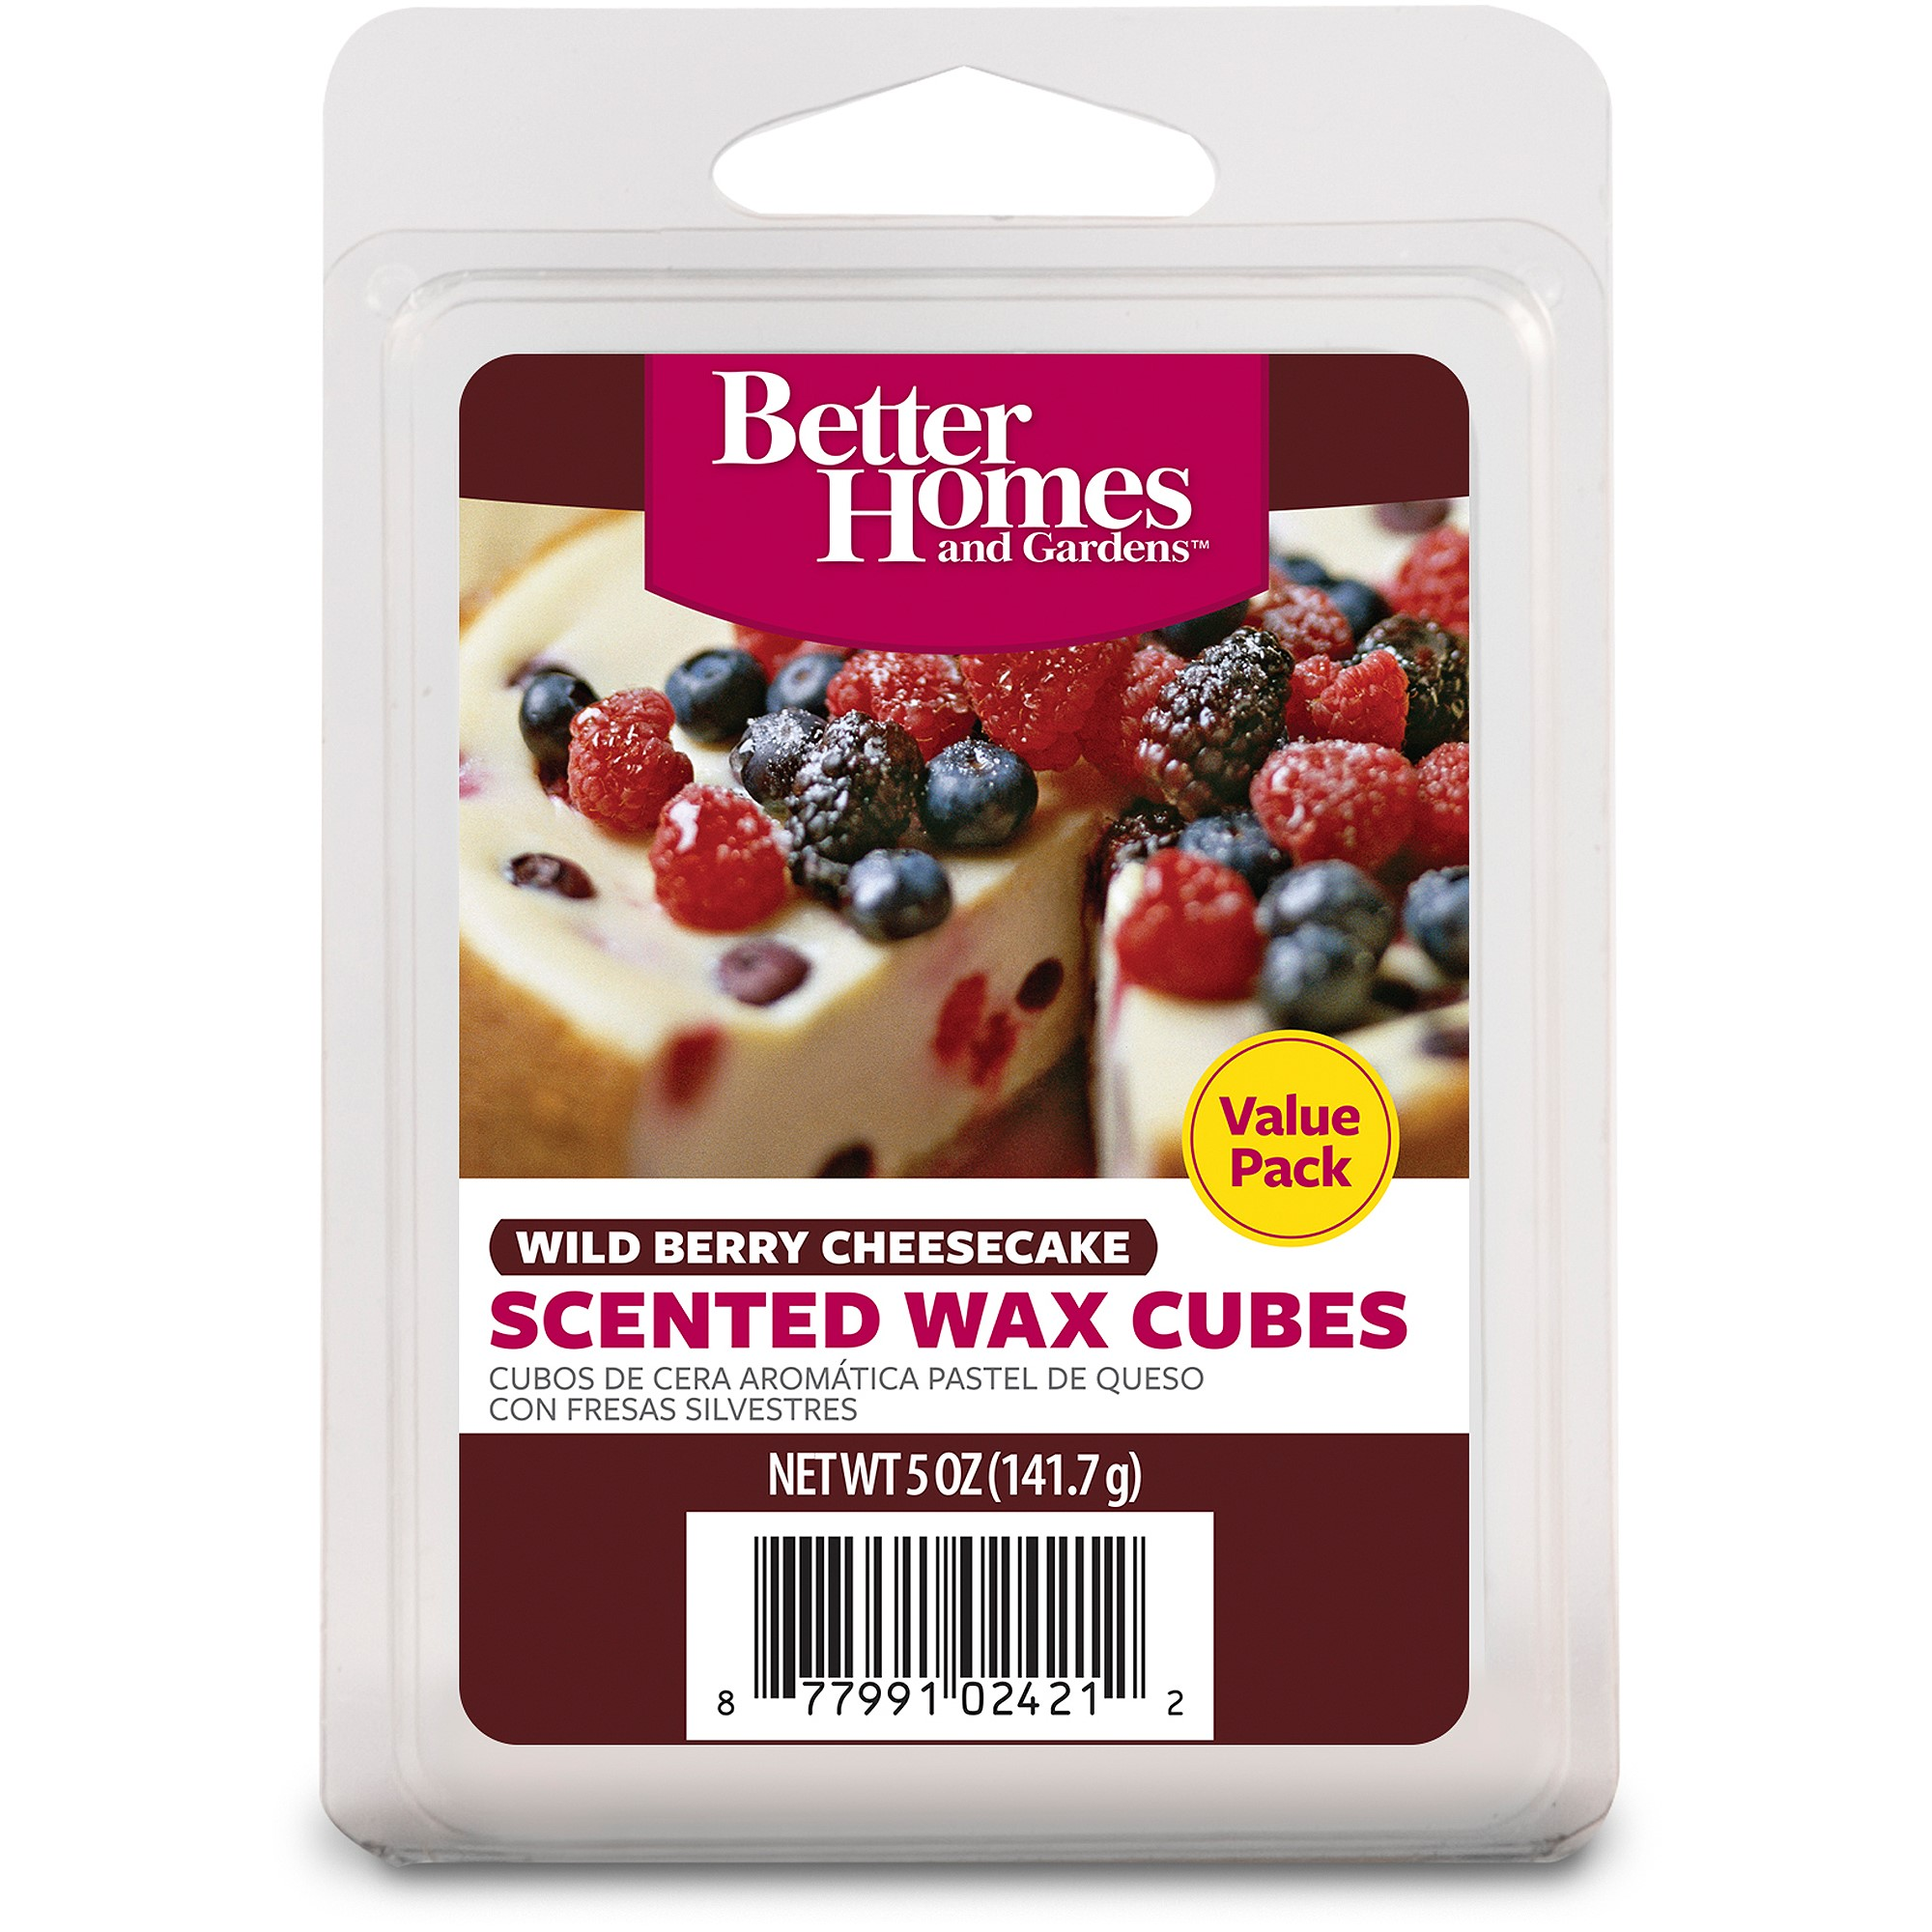 Better Homes and Gardens Value Wax Cubes, Wild Berry Cheesecake